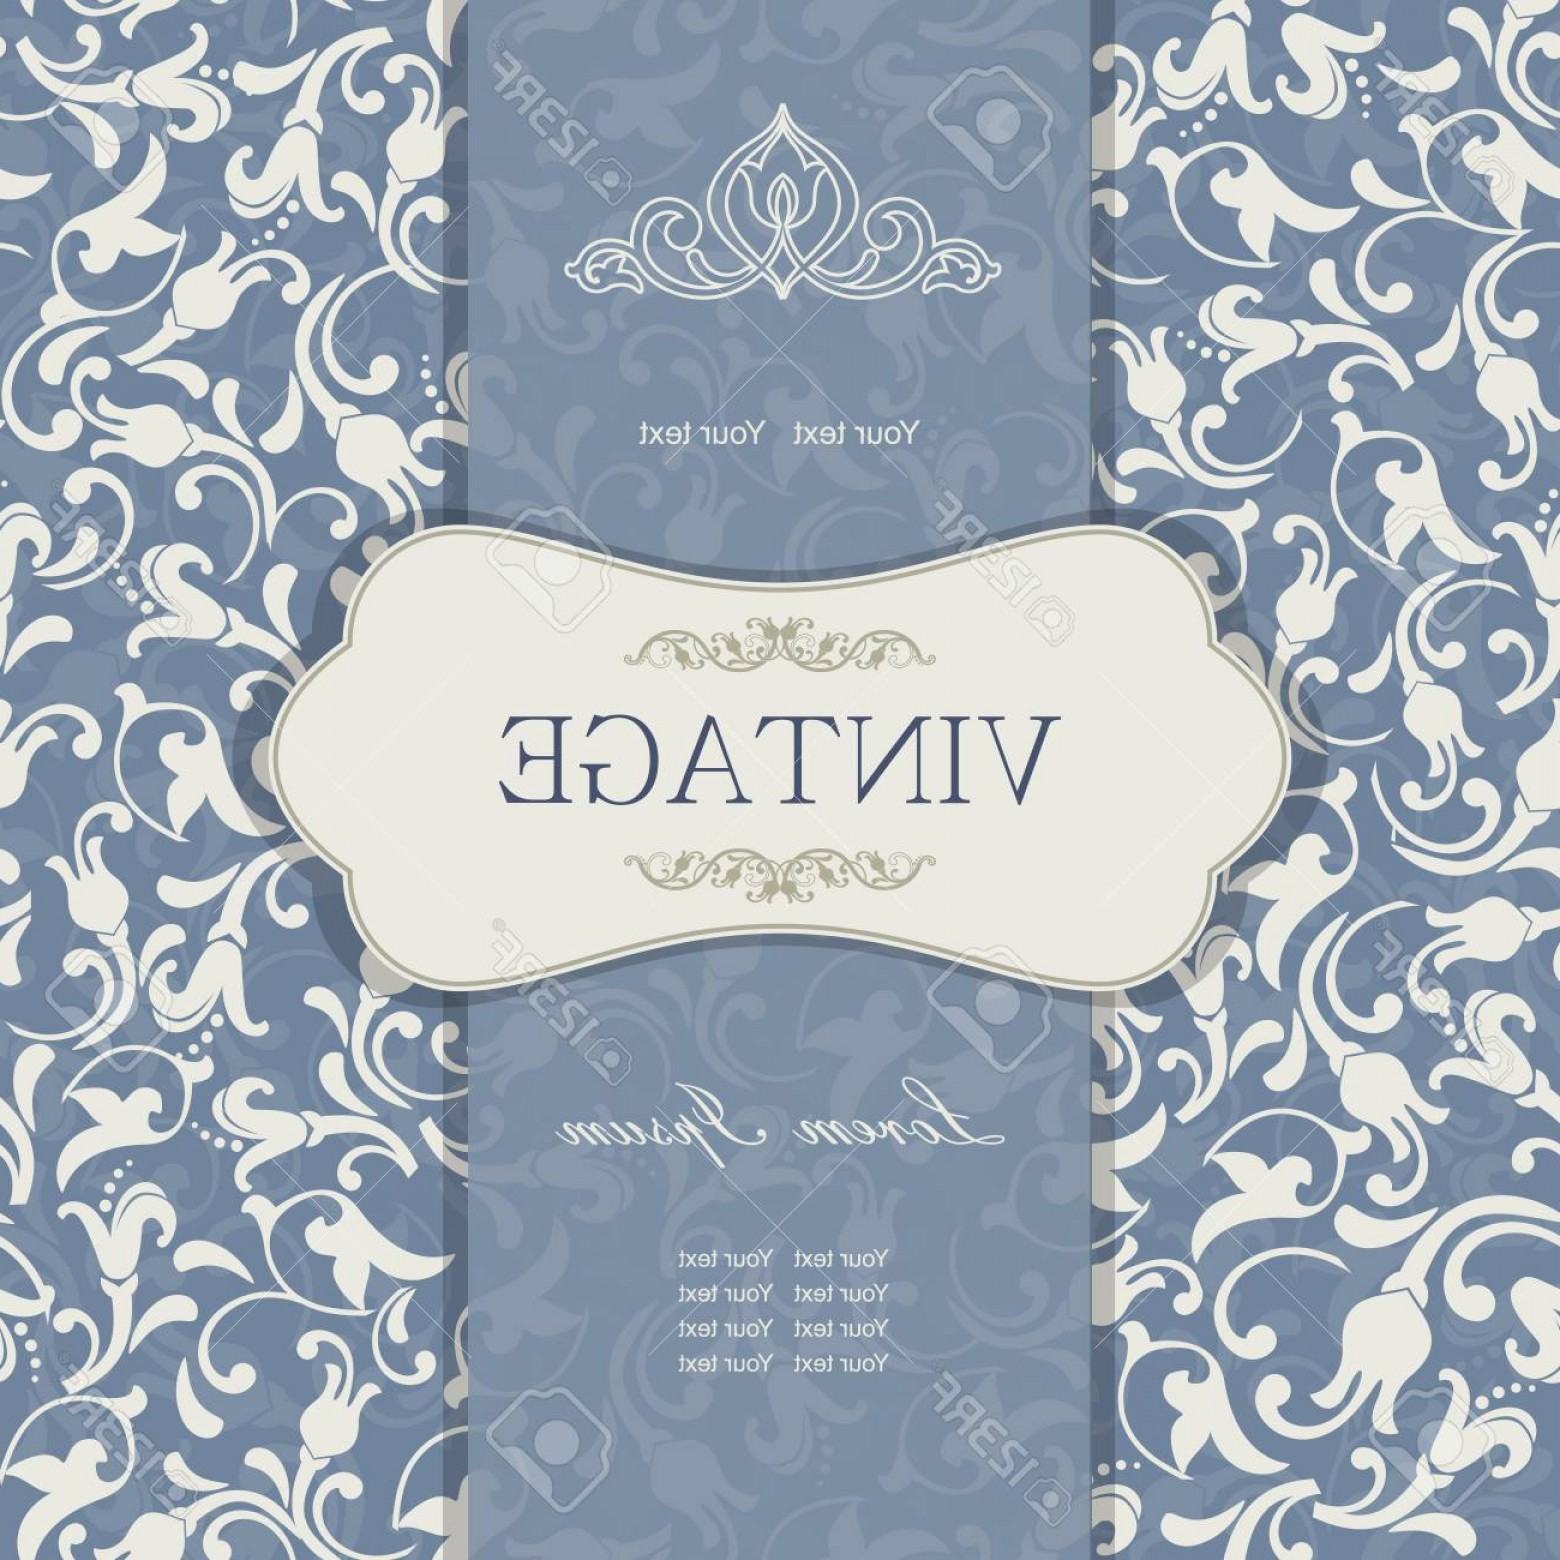 Aqua Victorian Vectors: Photovintage Invitation Card With Victorian Ornaments